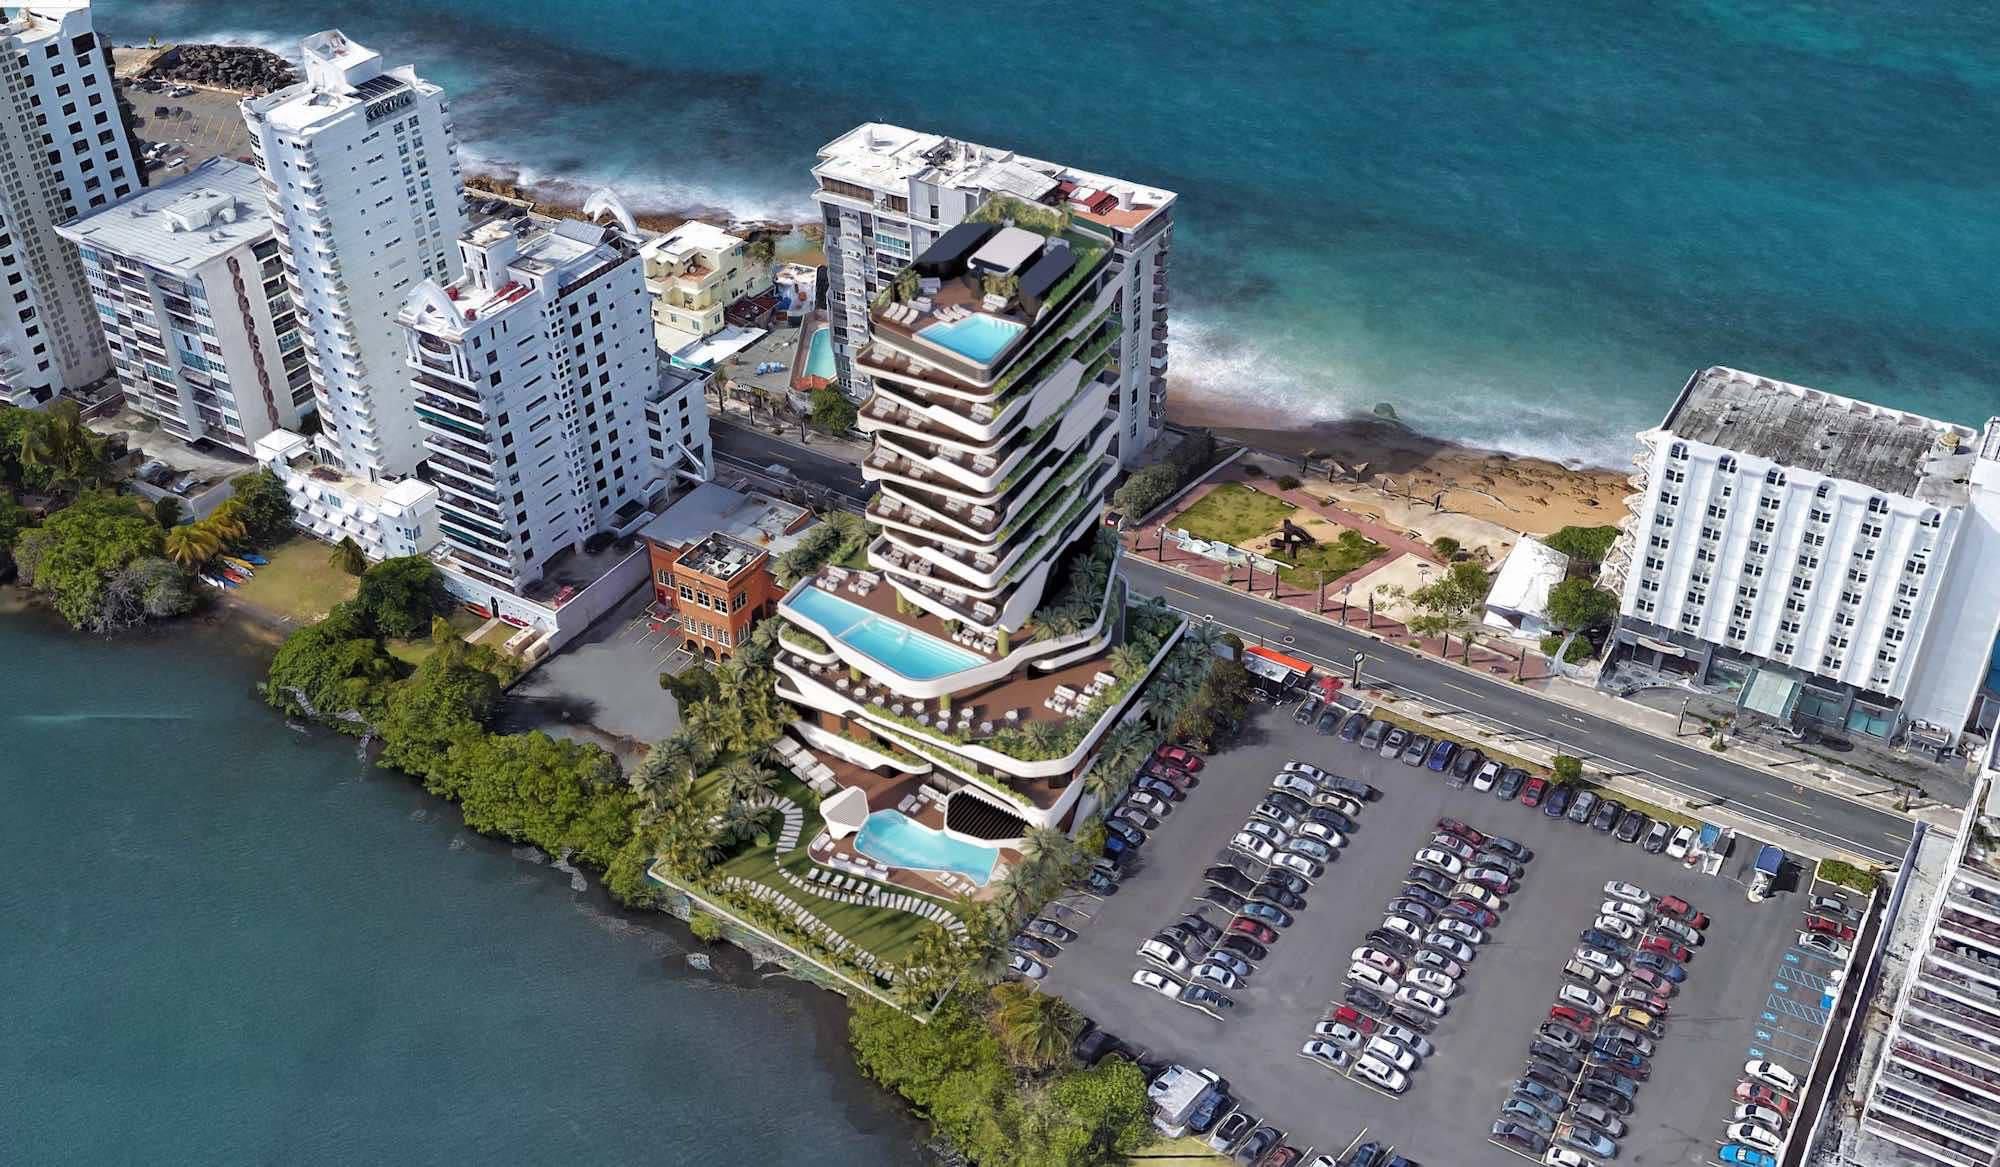 Yacht Hotel in San Juan de Puerto Rico, USA by DNA Barcelona Architects